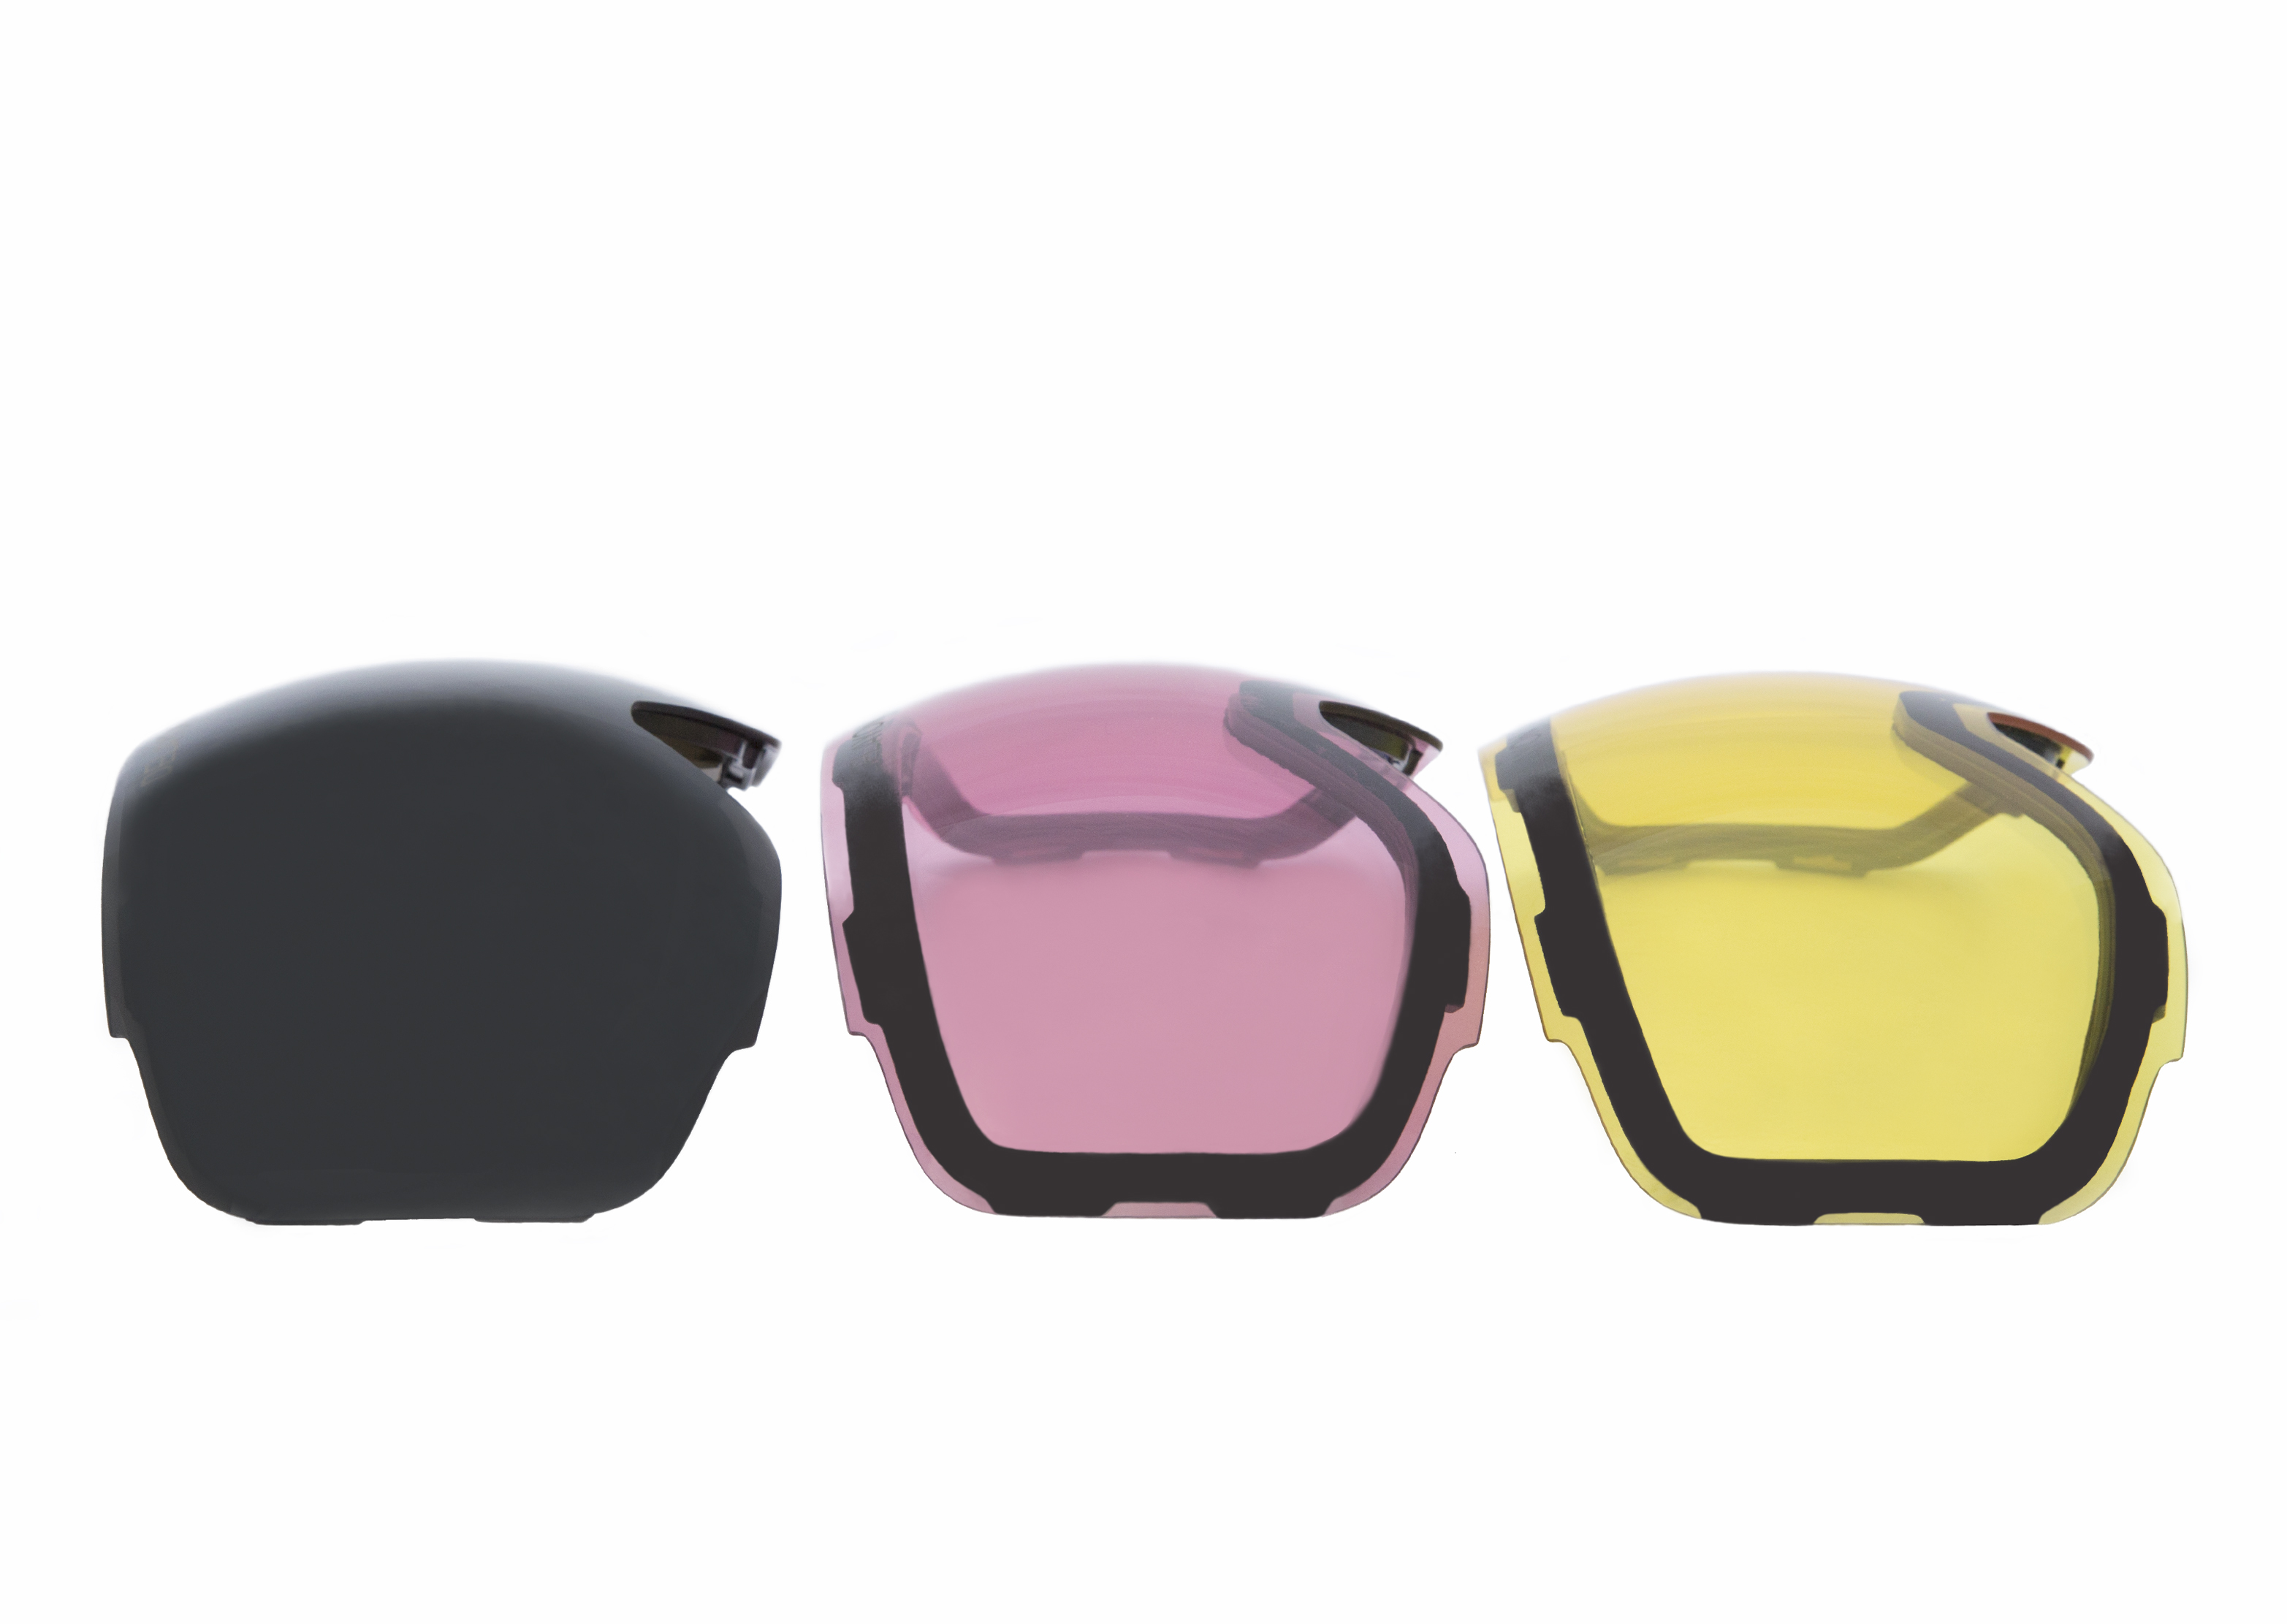 Delayon Eyewear Lens Tripple Pack STRONG Black Pink Yellow